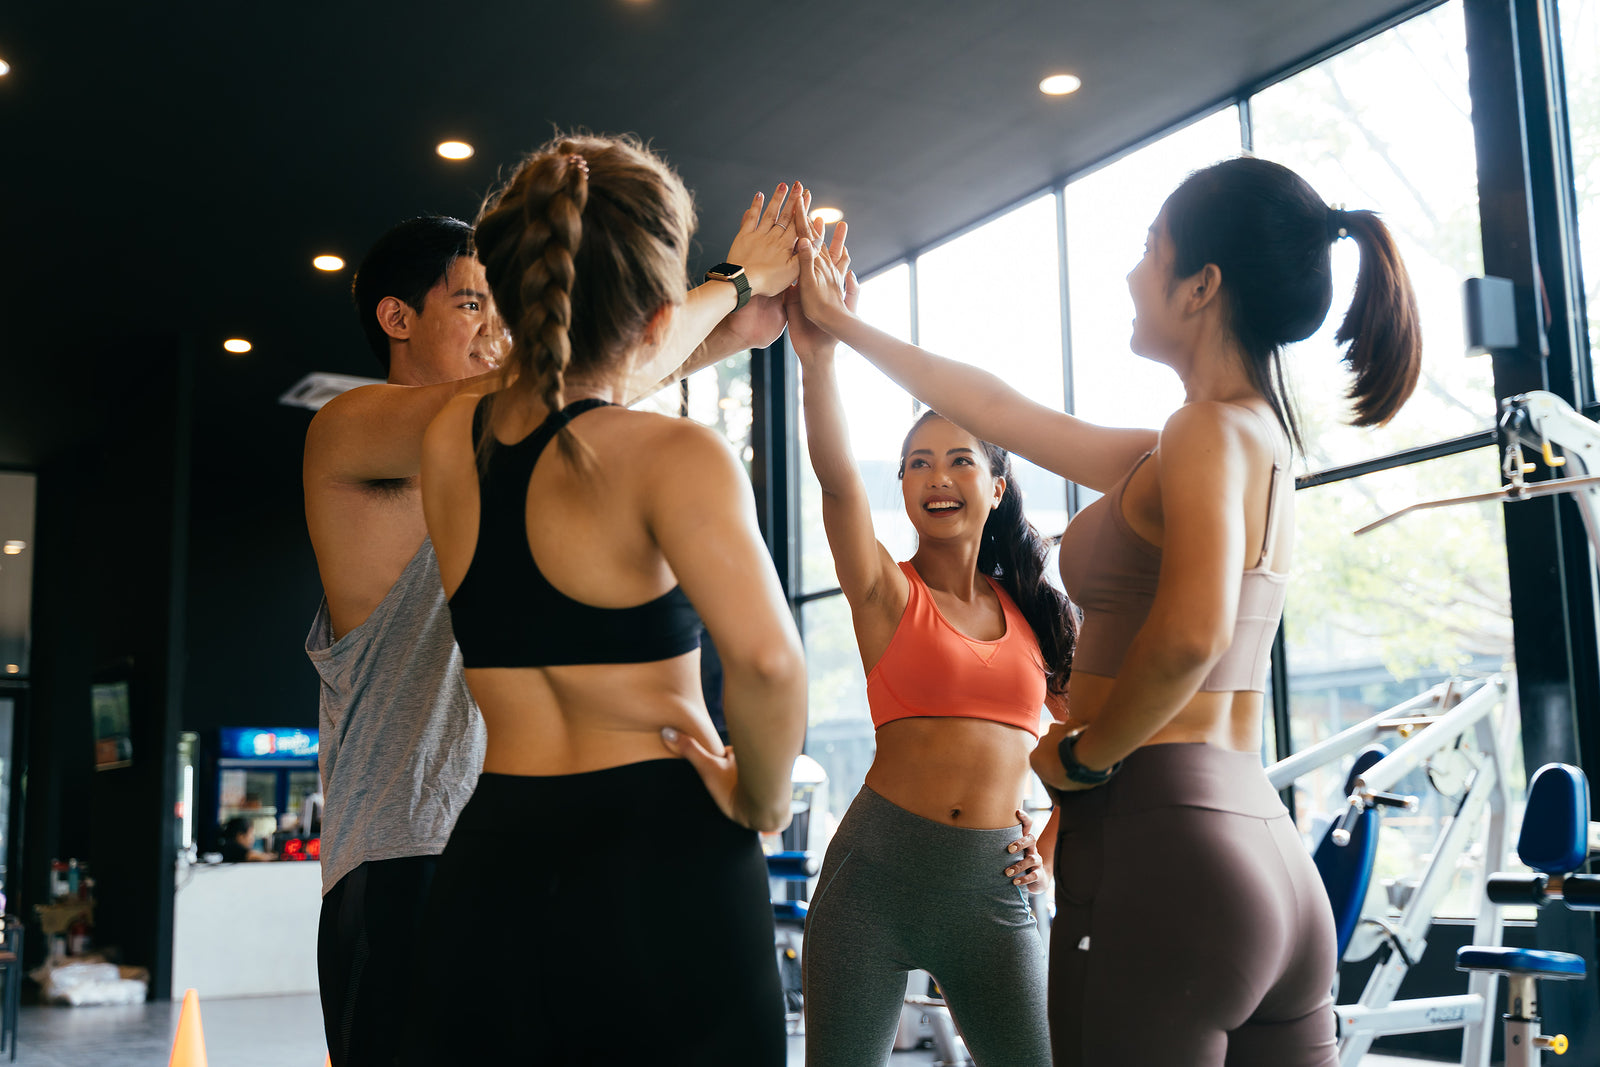 3 women and 1 man in the gym during a workout